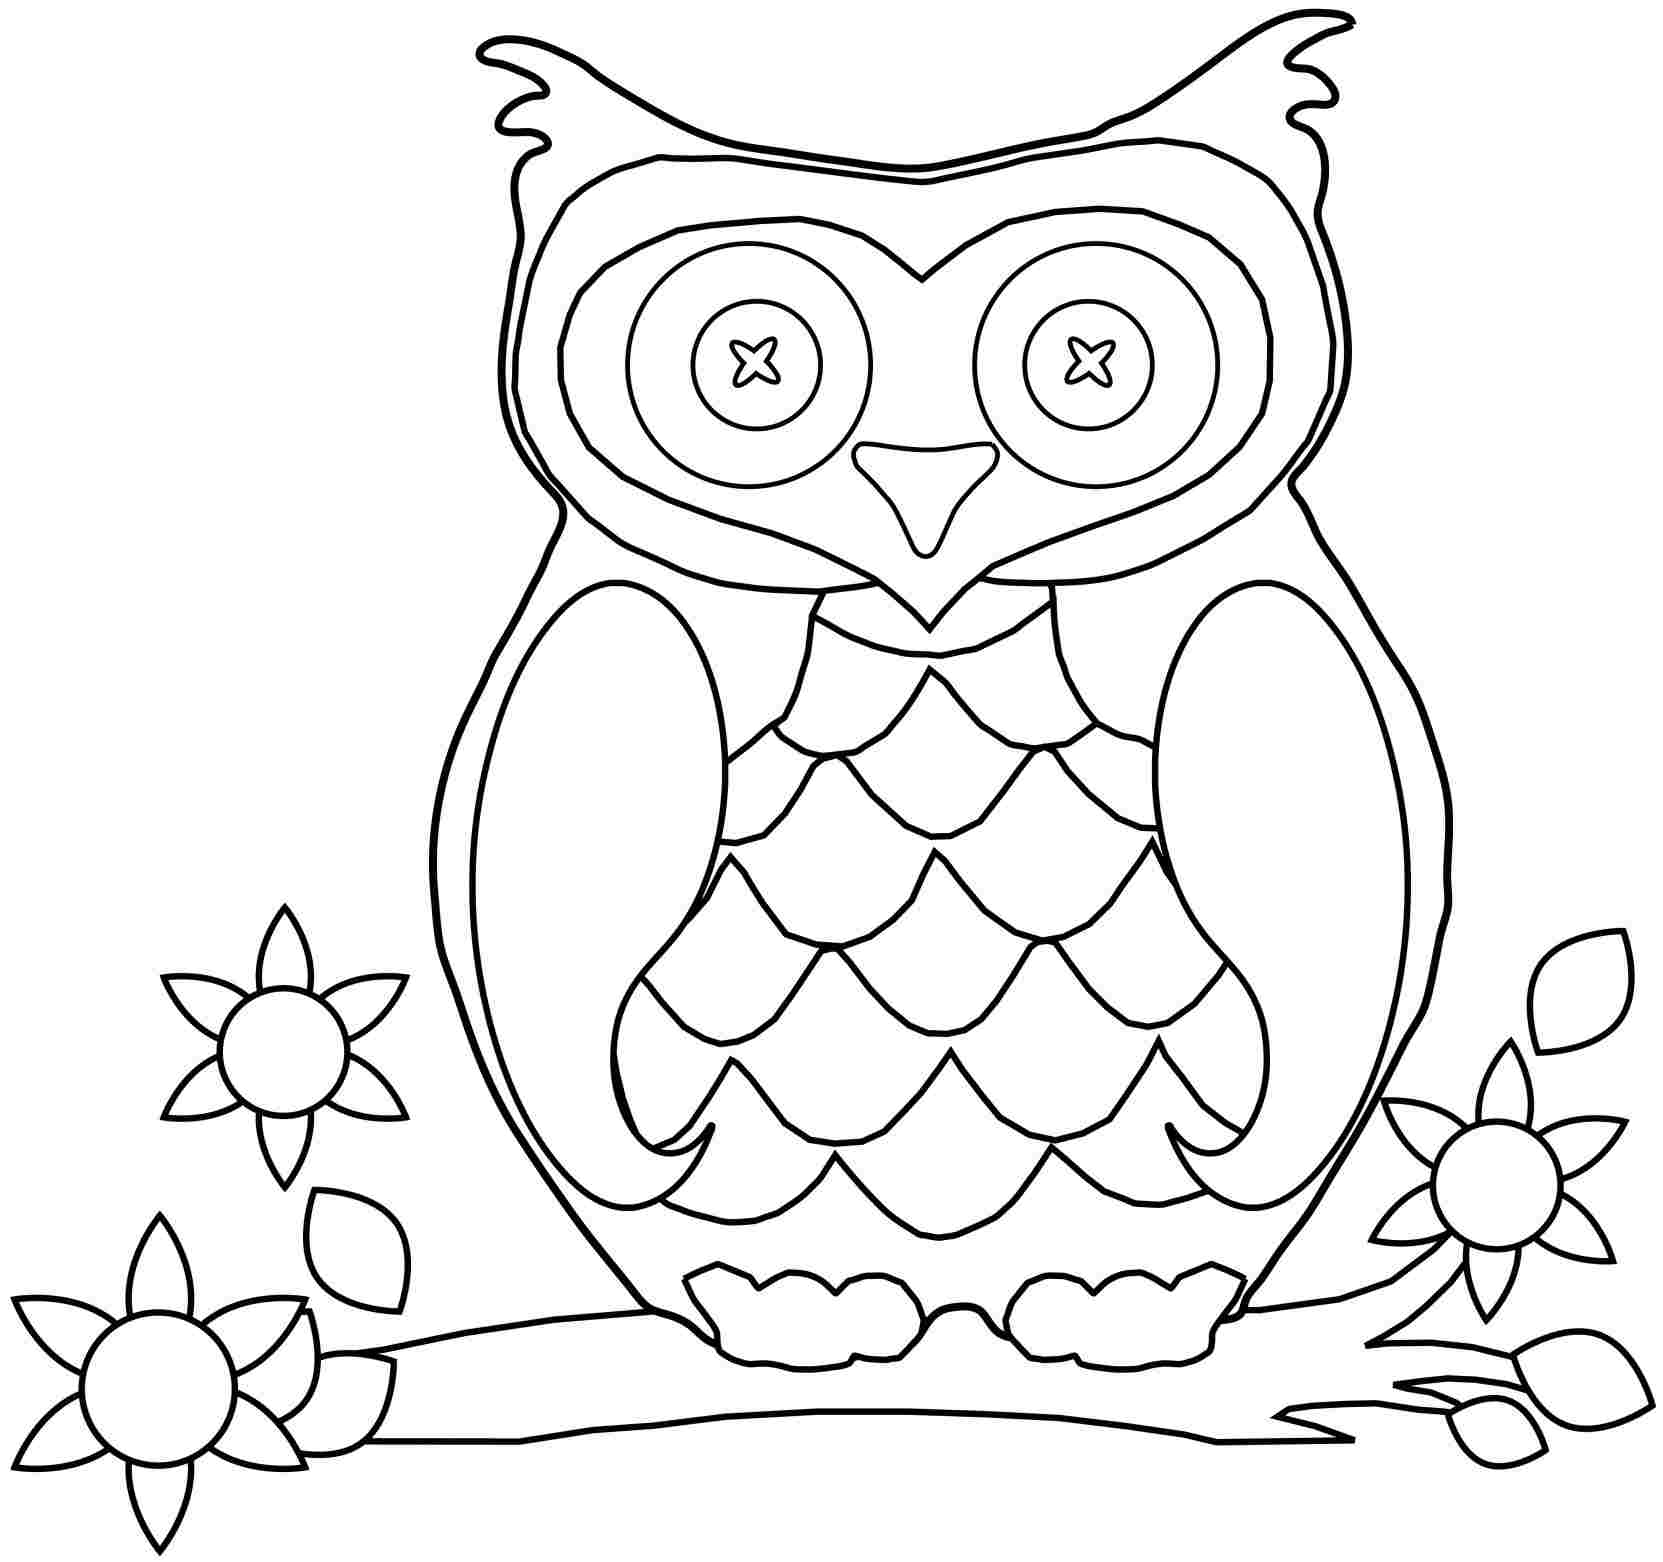 cute owl coloring pictures owl coloring page gallery glass projects pinterest cute coloring owl pictures